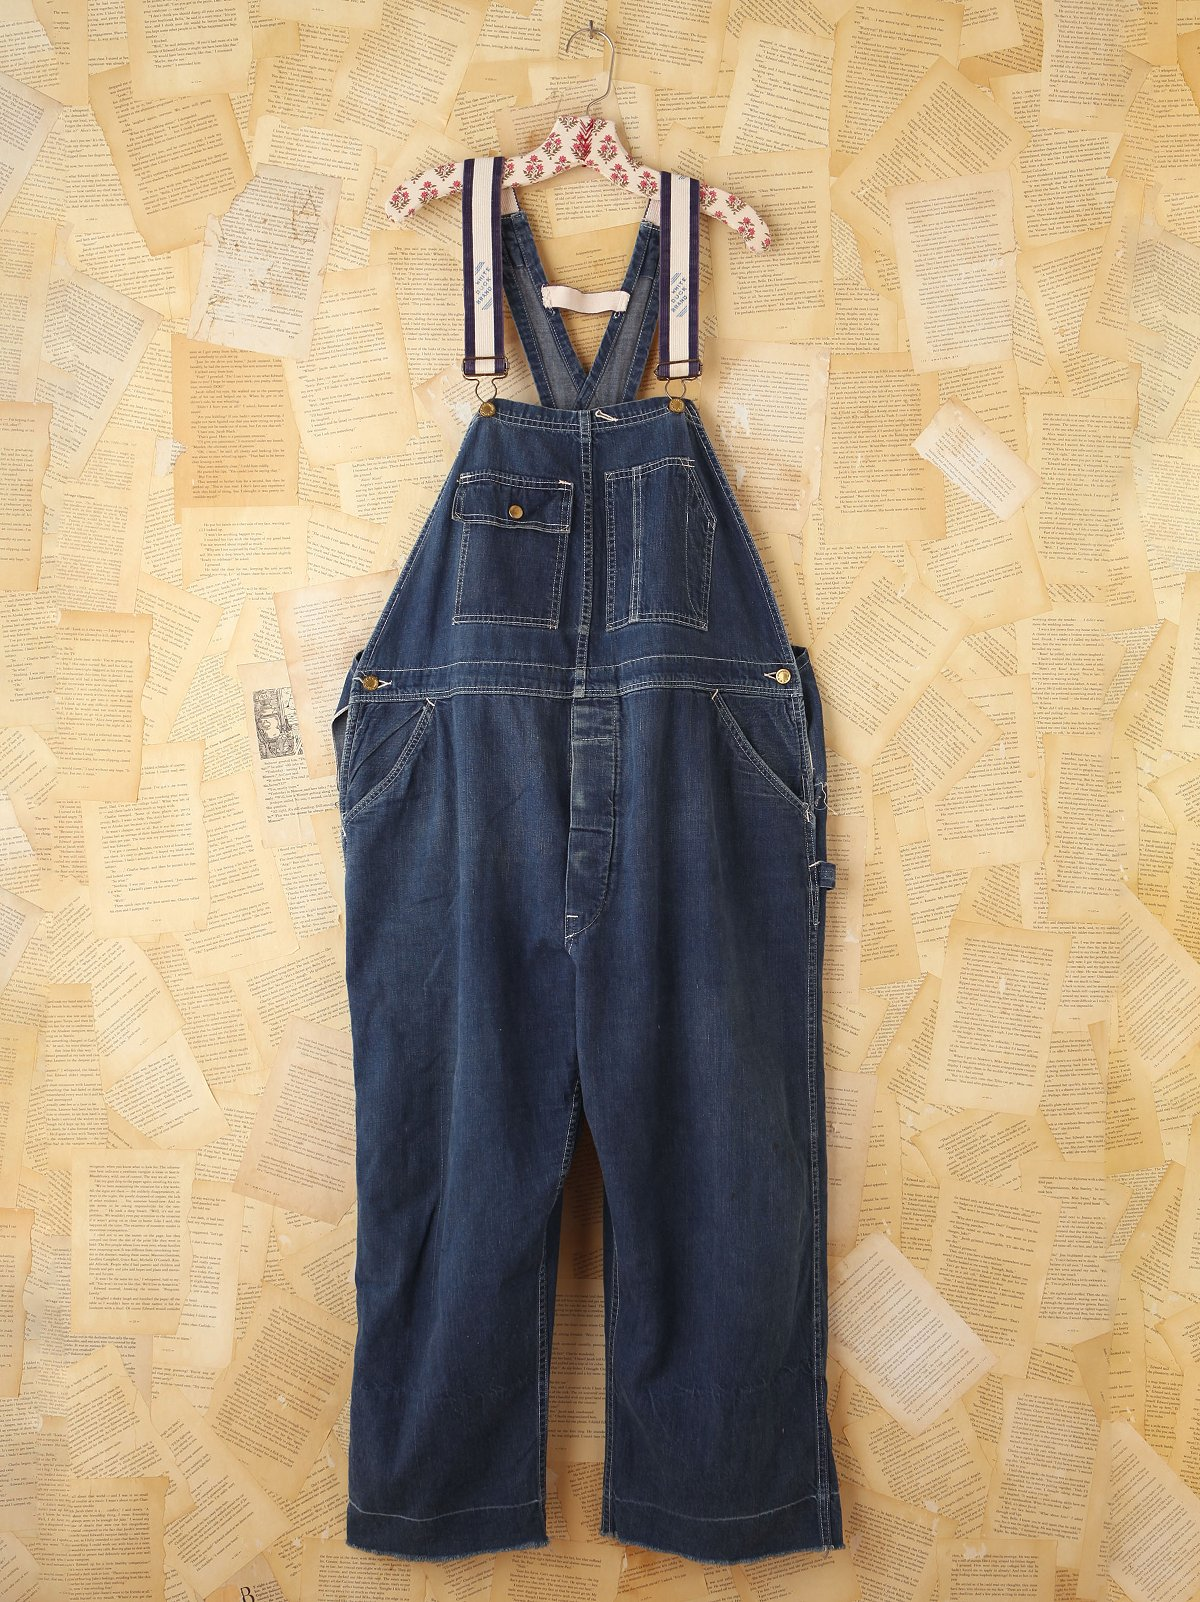 Vintage White Buck Denim Overalls